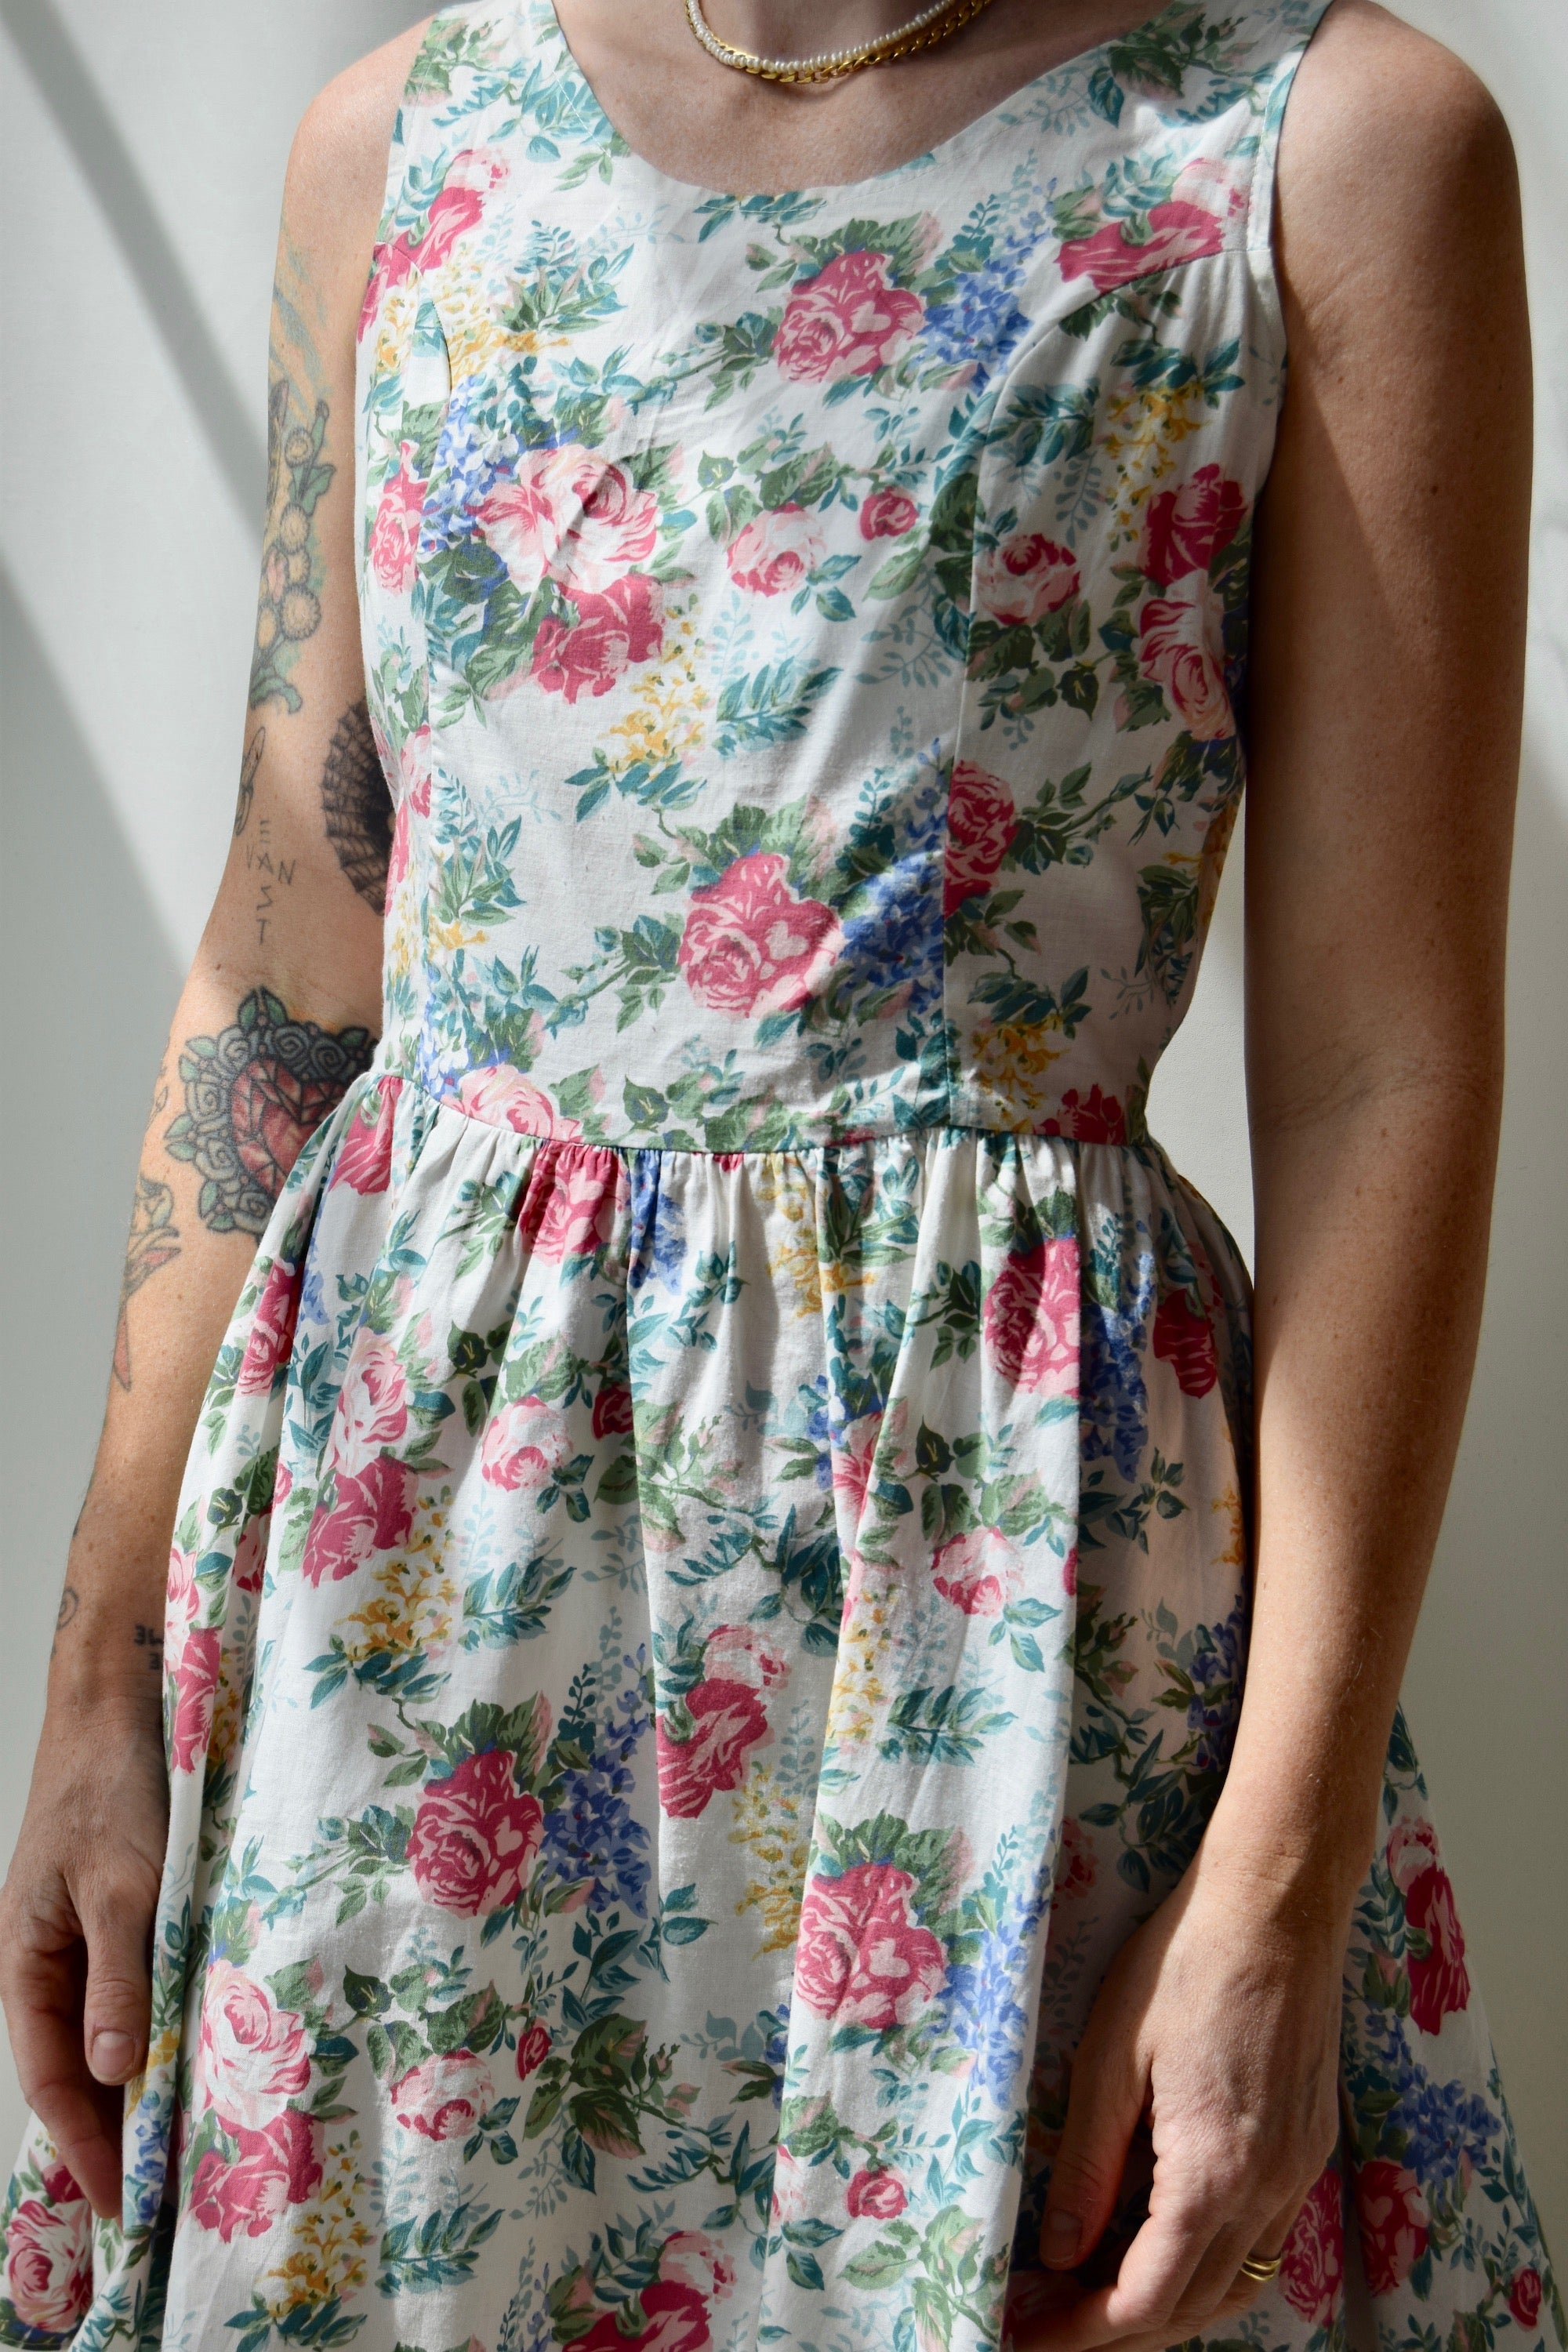 Cotton Floral Garden Dress